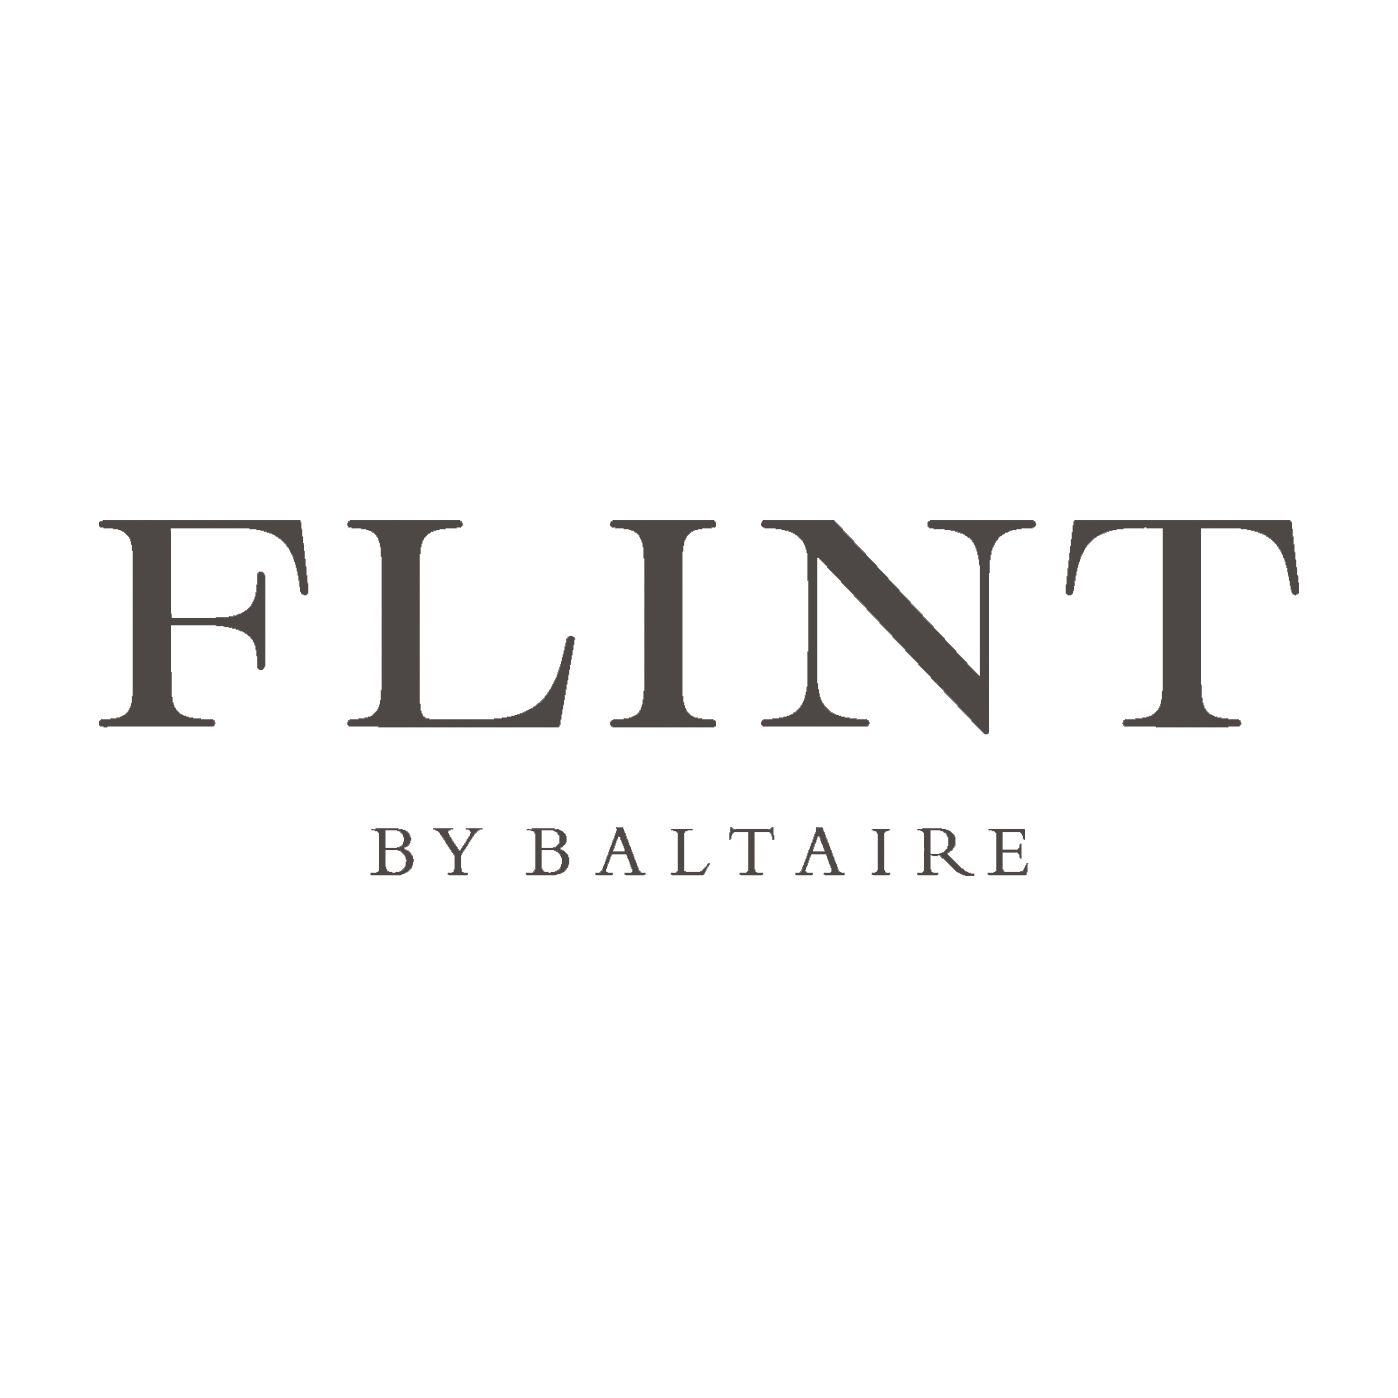 FLINT by Baltaire